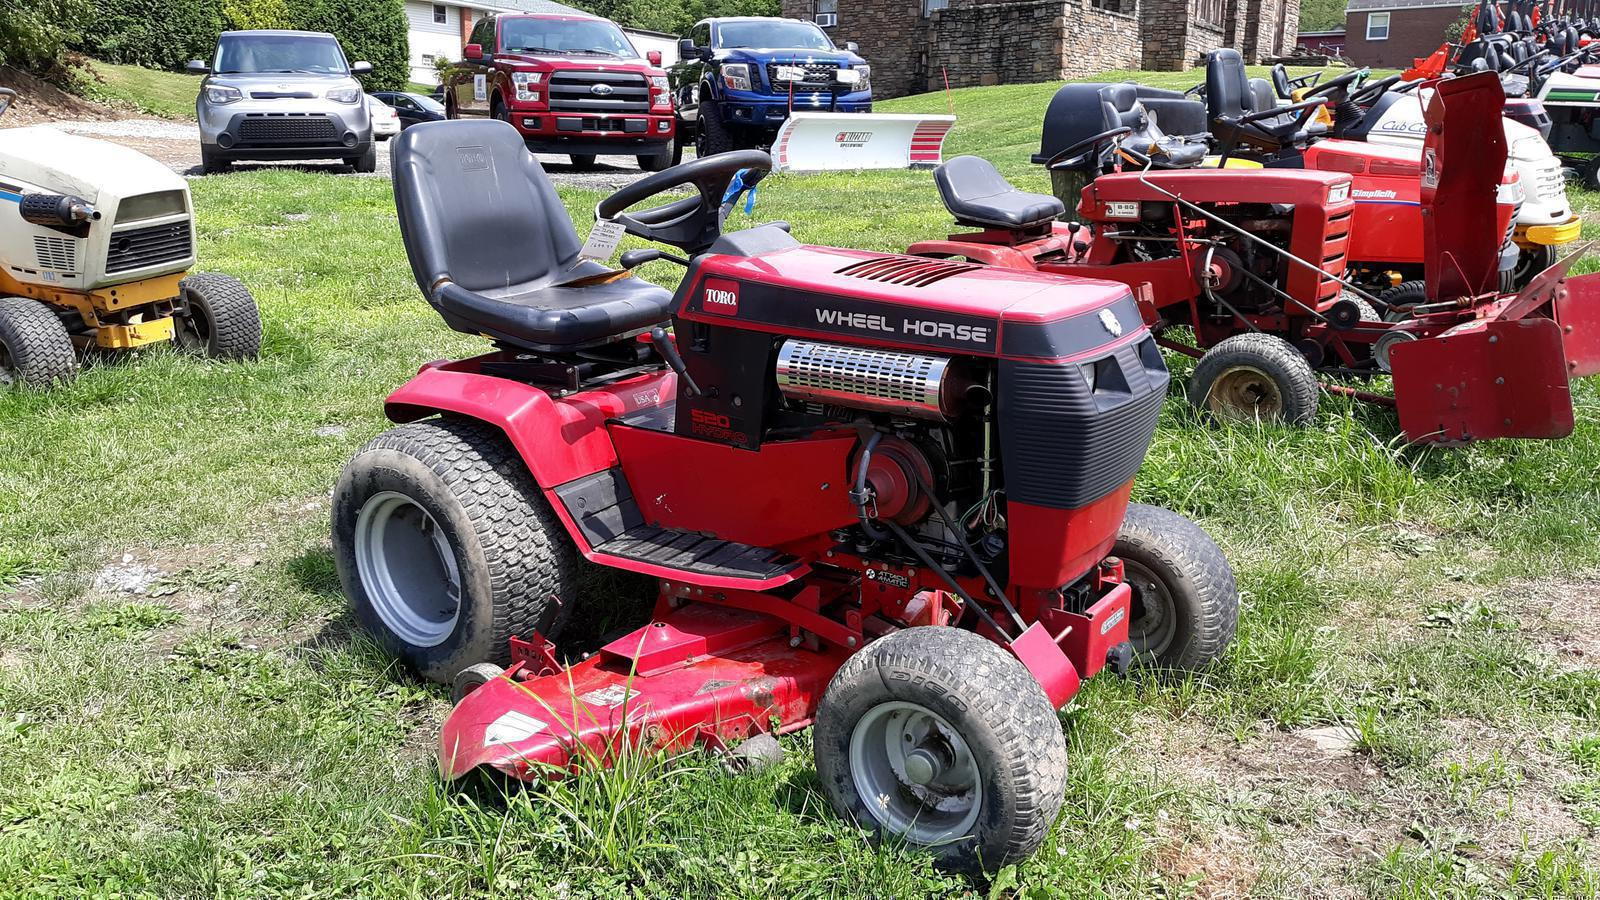 Inventory from Wheel Horse and Woods Johnstown Johnstown, PA